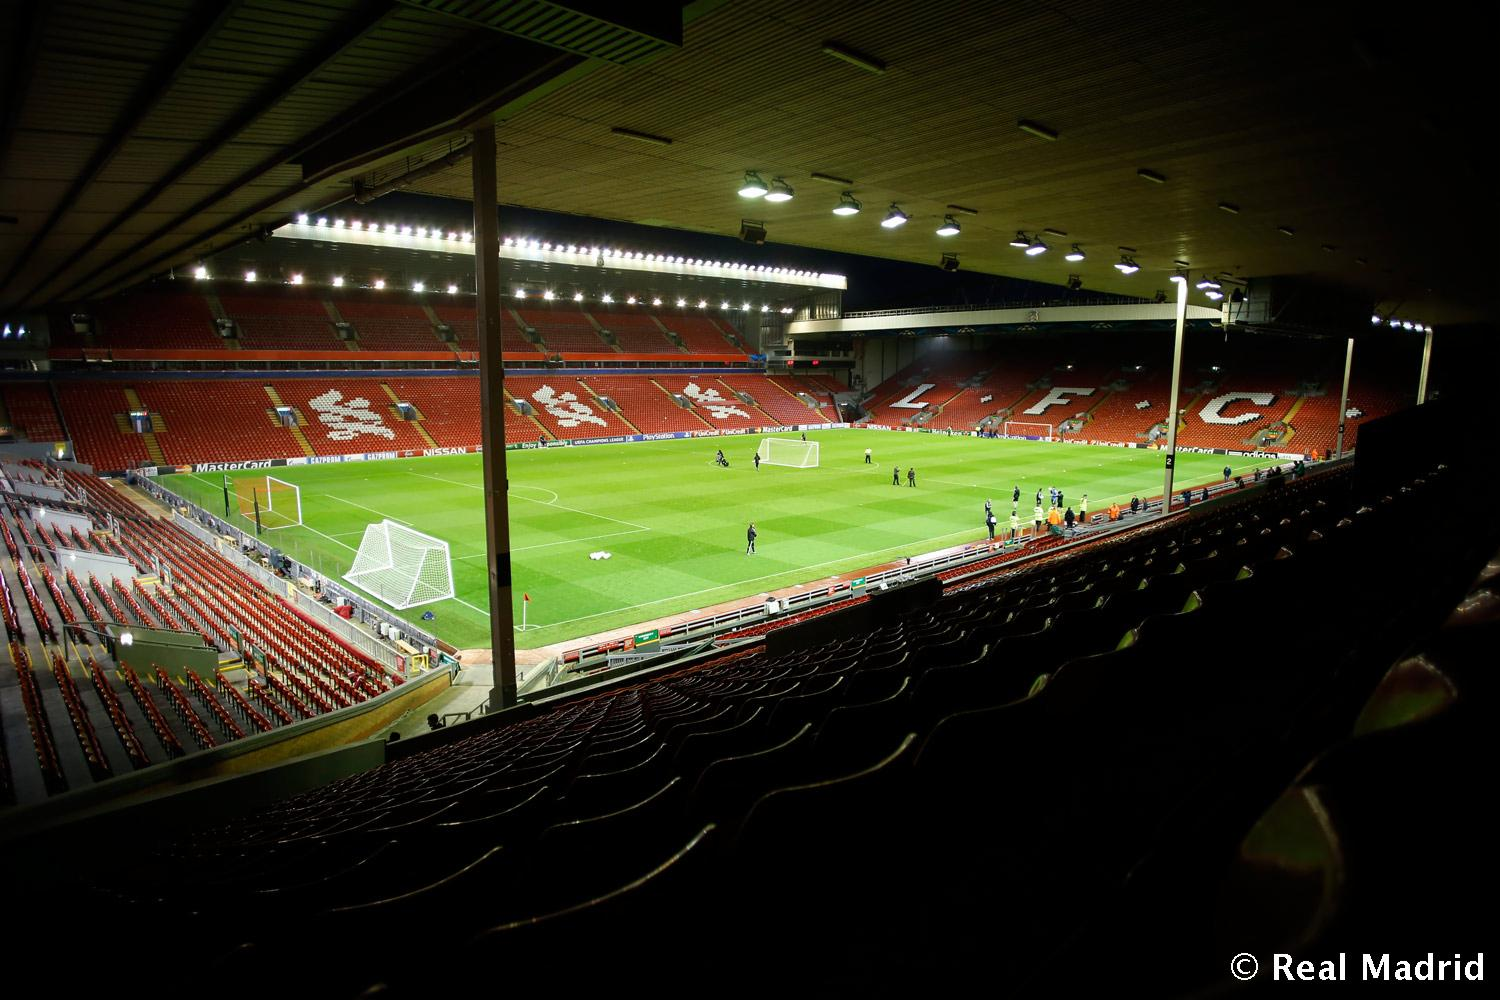 Real Madrid - Estadio de Anfield - 21-10-2014